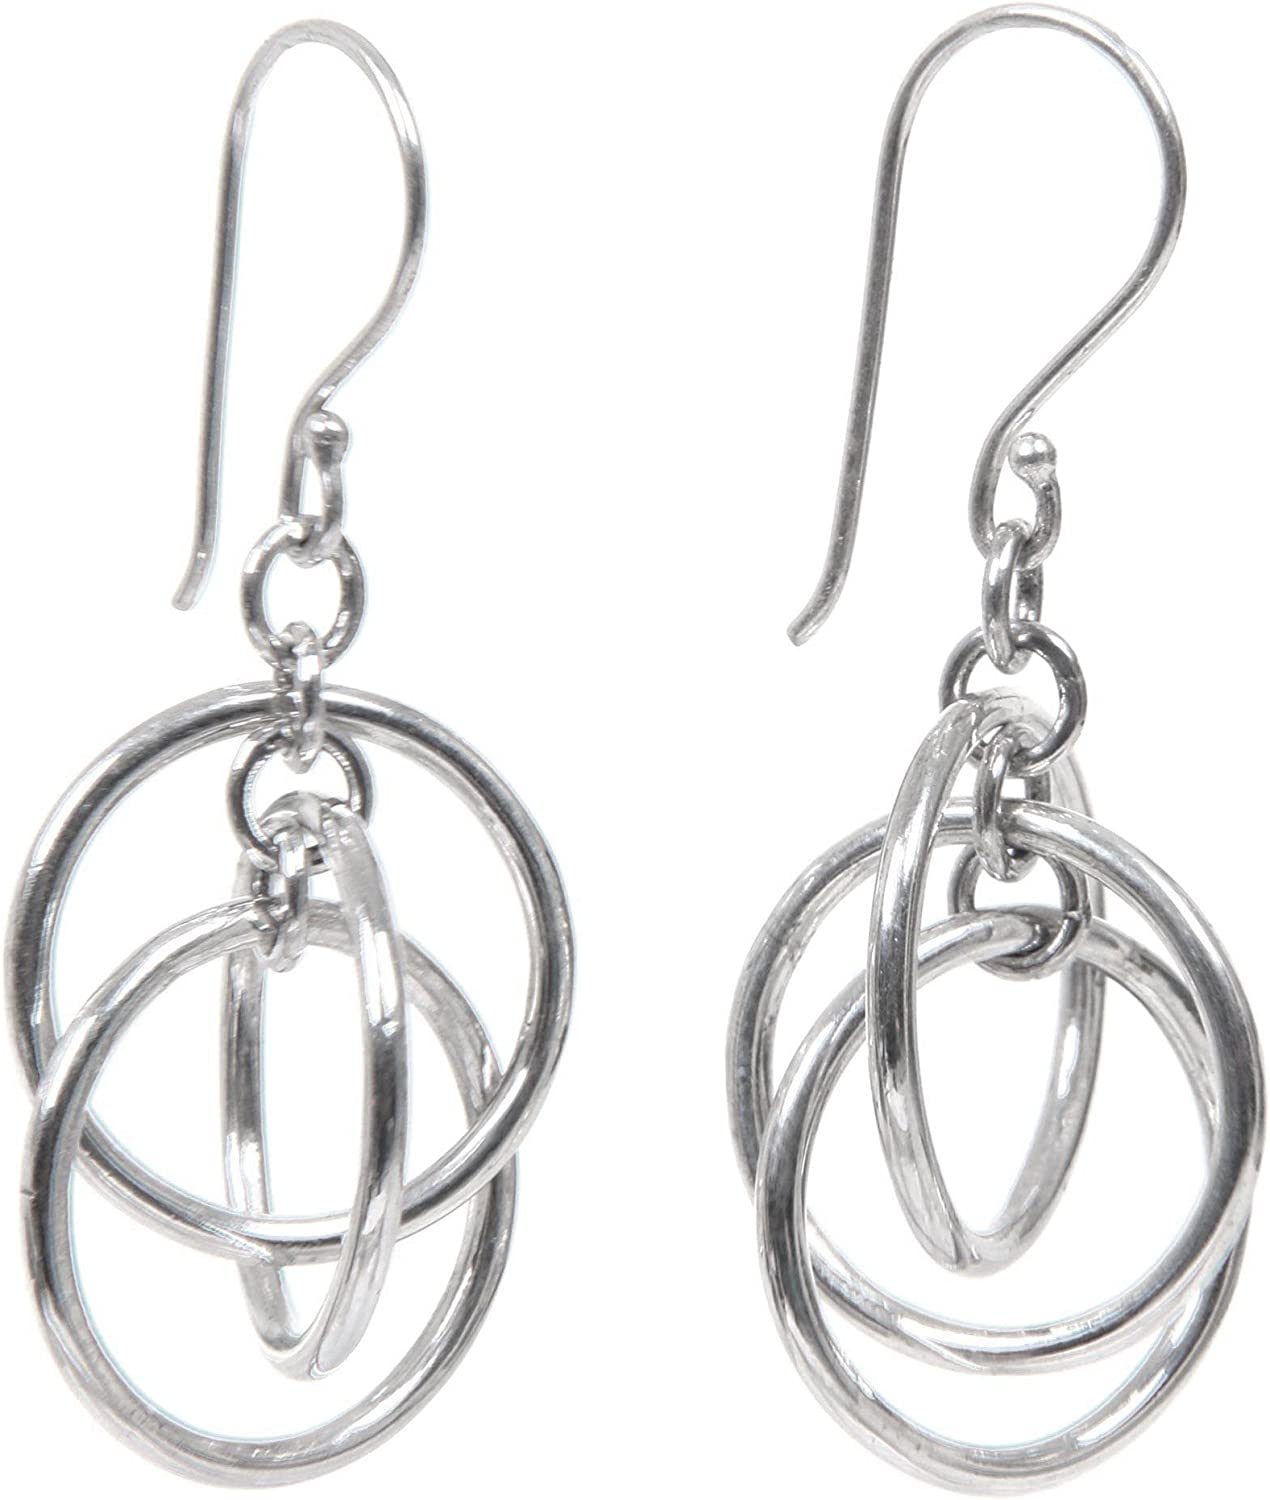 NOVICA Modern 3 Ring Ranking TOP9 Sterling Ring' Dangle Max 56% OFF Silver Earrings